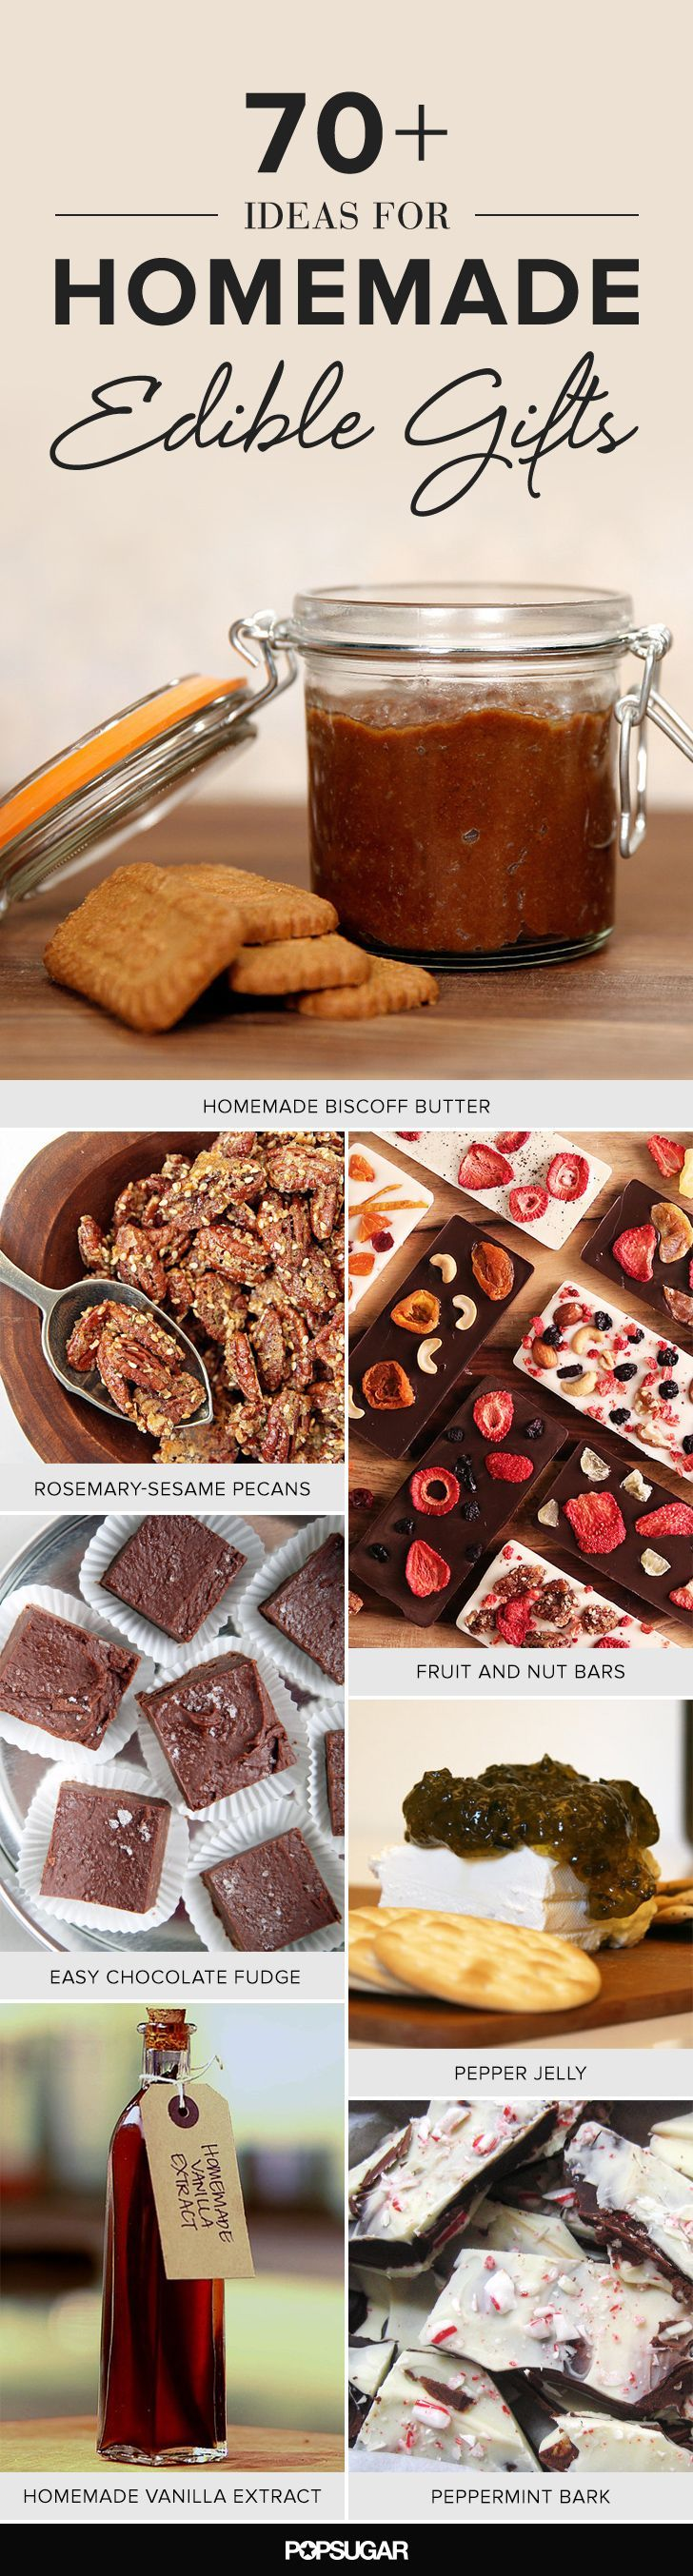 70+ Ideas for DIY Edible Gifts